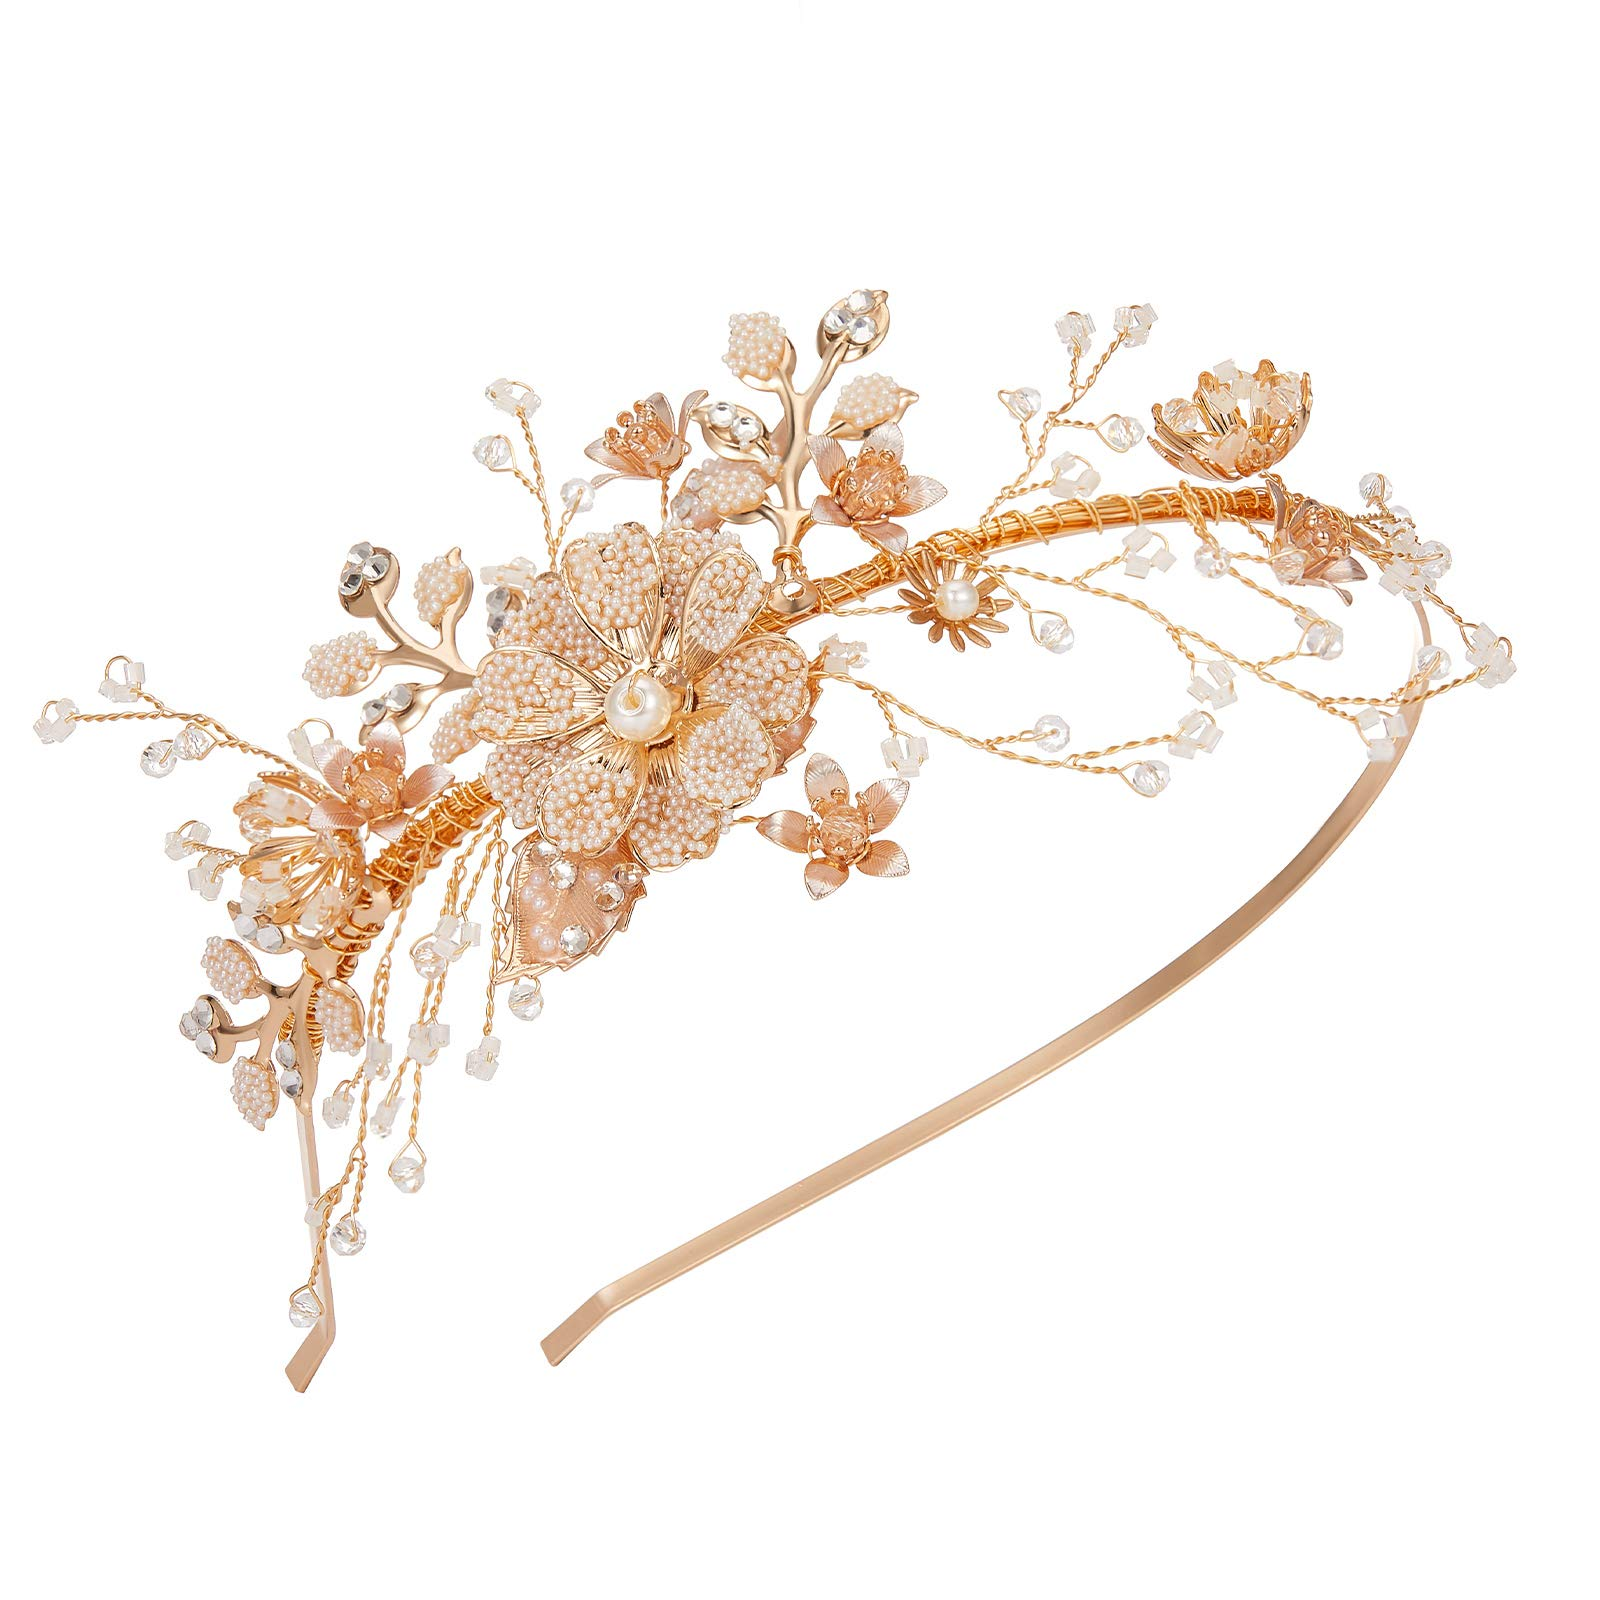 SWEETV Flower-Leaf Bridal Headband Gold Crystal Tiara for Women Pearl Wedding Headpieces for Bride Hair Accessories for Prom Birthday Party